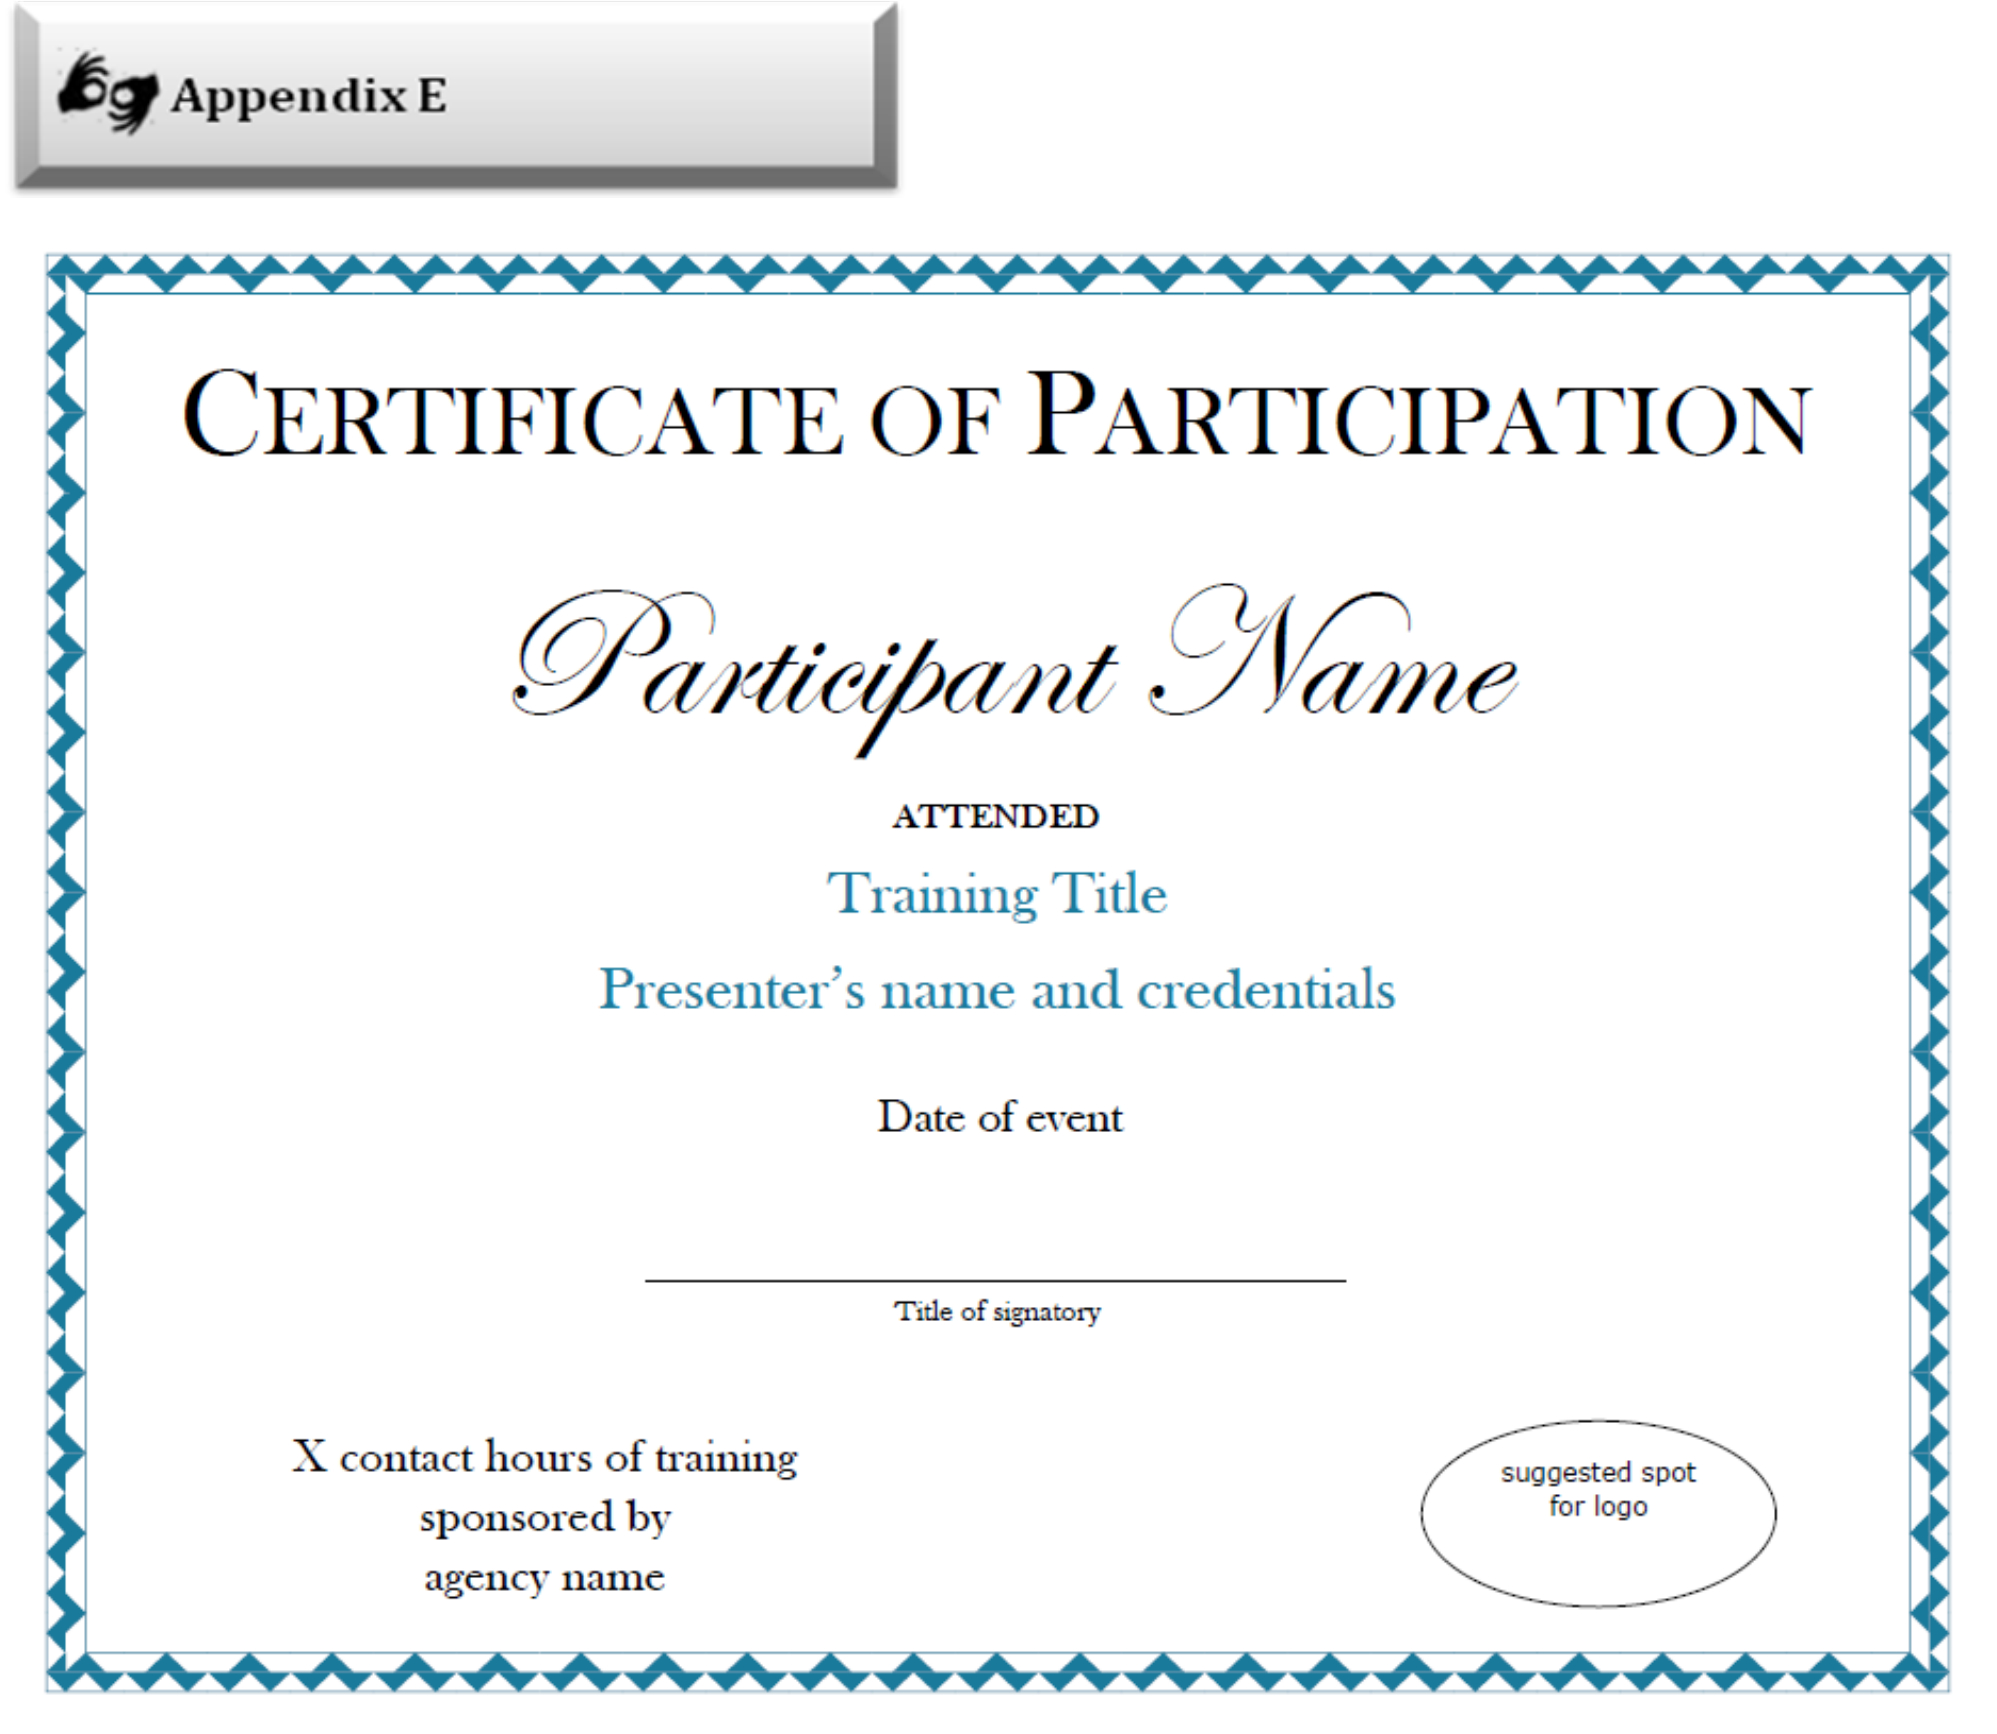 Certificate Of Participation Sample Free Download For Certificate Of Participation Template Pdf